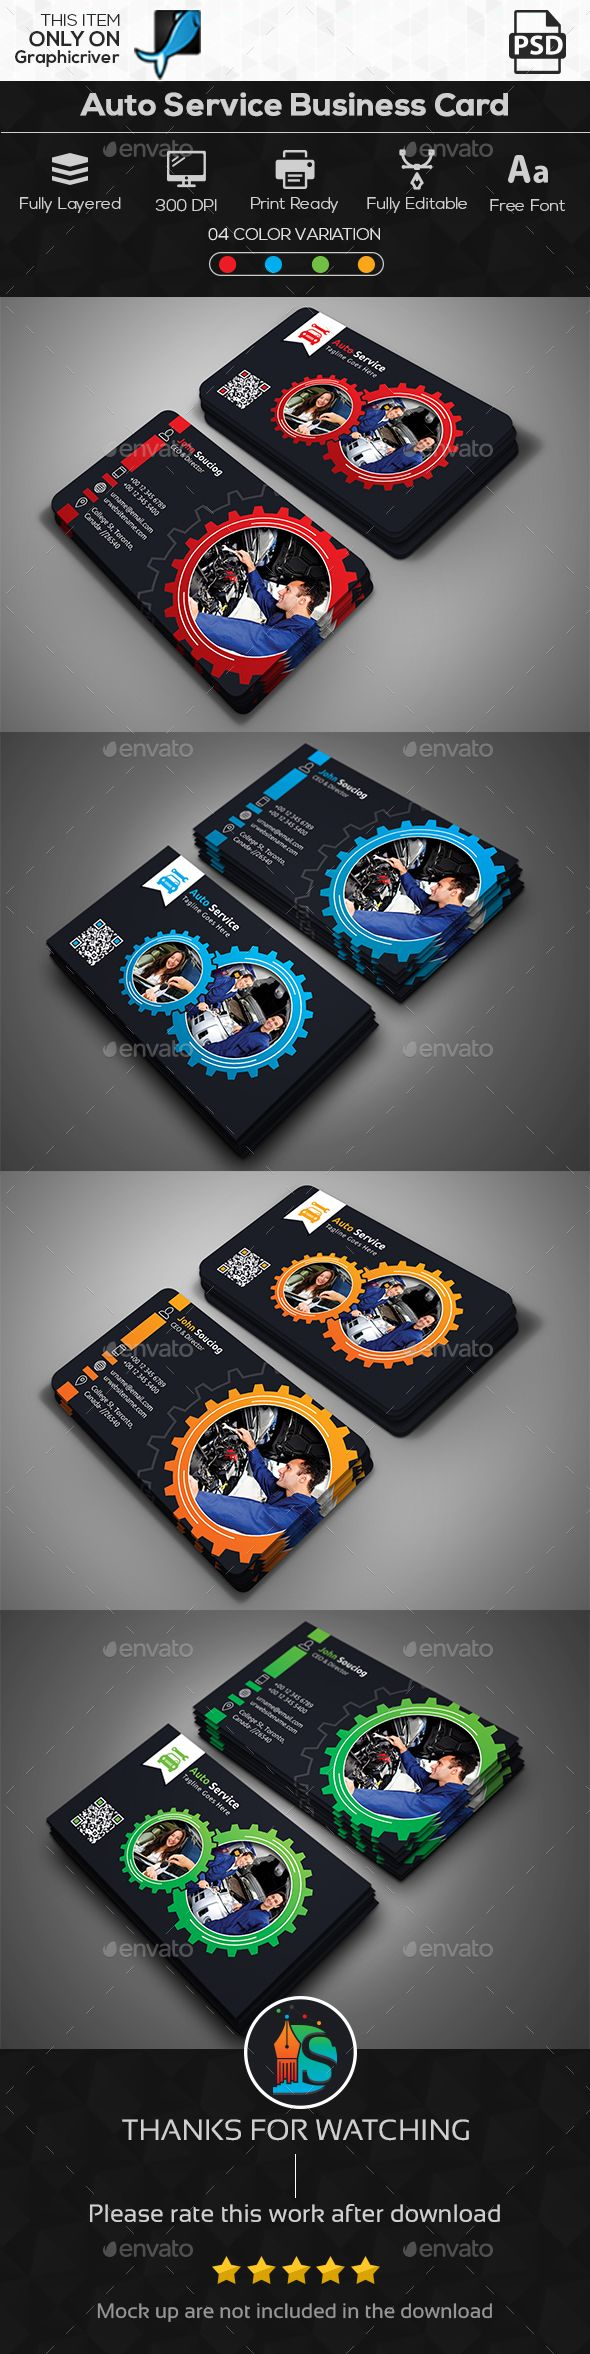 Auto Service Business Card | Auto service, Car repair and Business cards